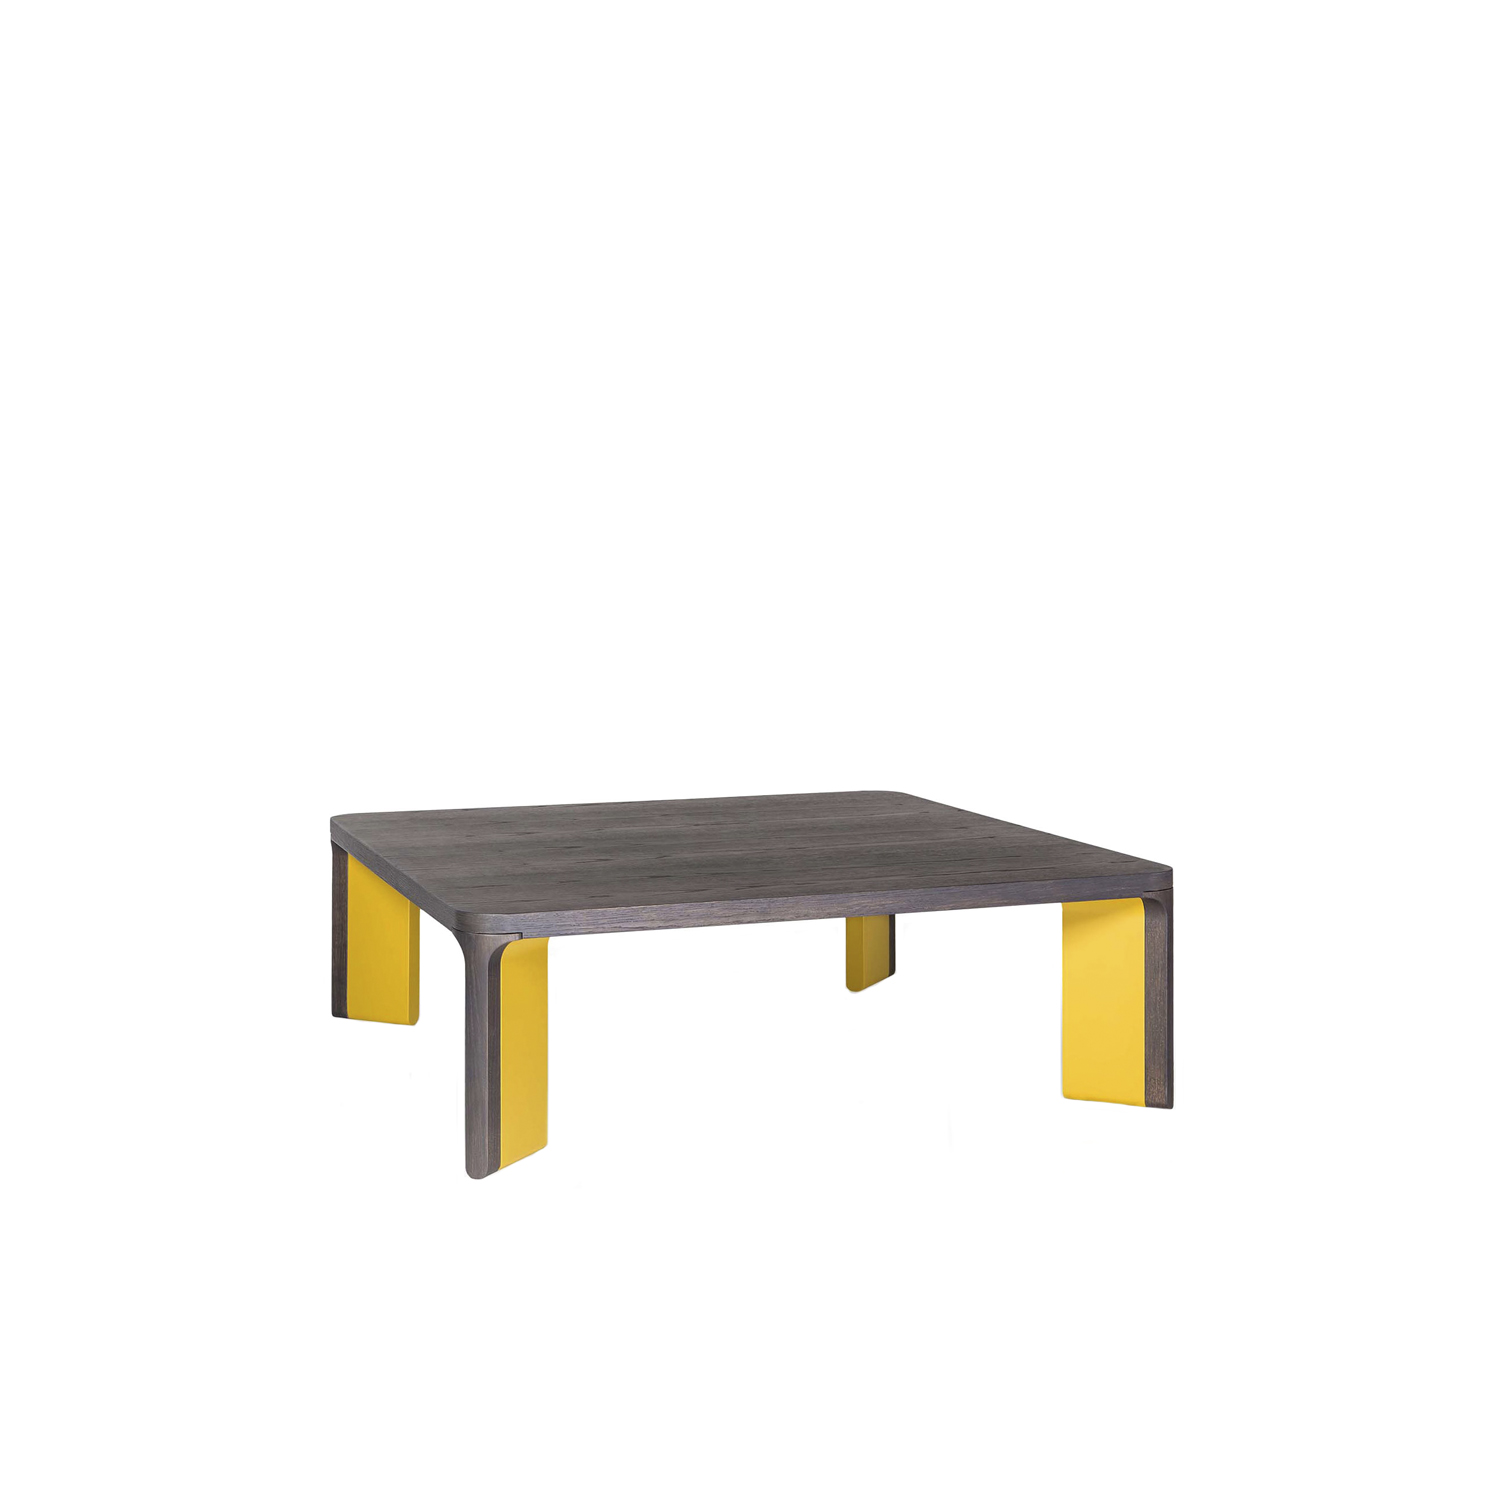 Acro-bat 007 Low Table - Low table in various sizes with round corners. Top in wood and legs in two sections in wood and lacquer.  | Matter of Stuff